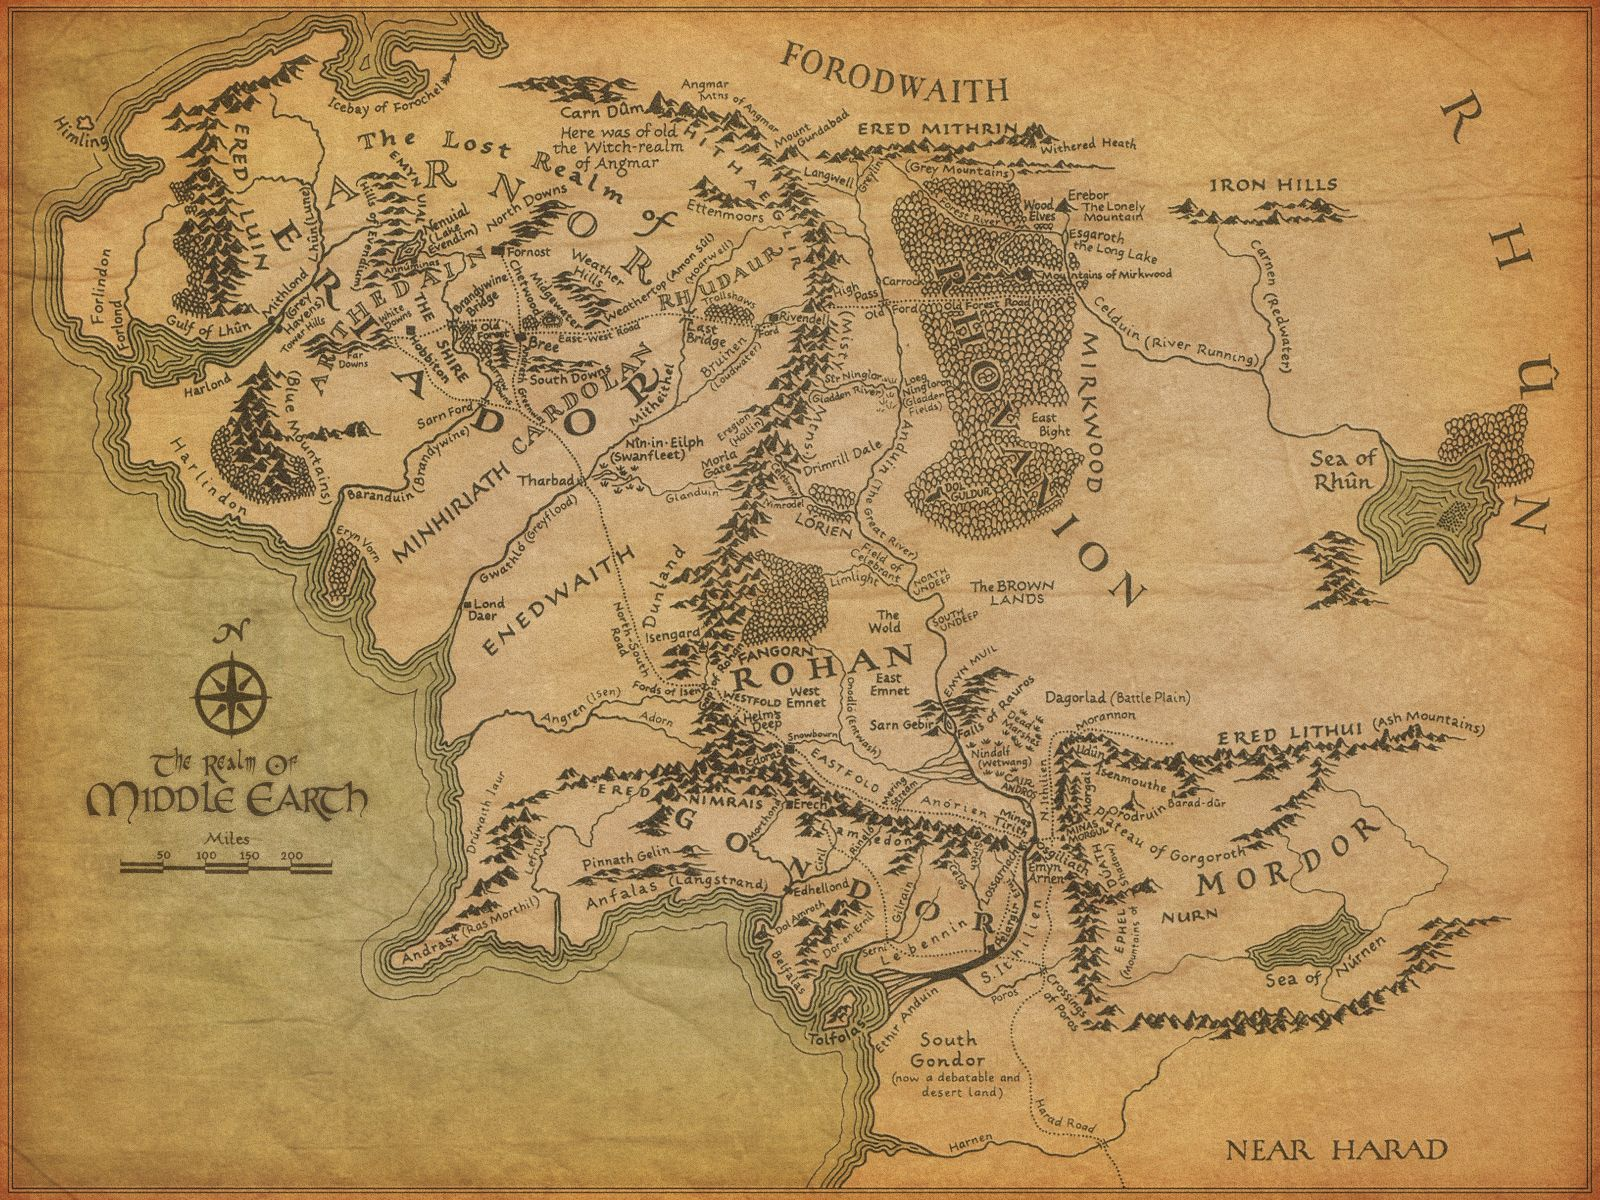 Map Of Middle Earth From The Lord Of The Rings